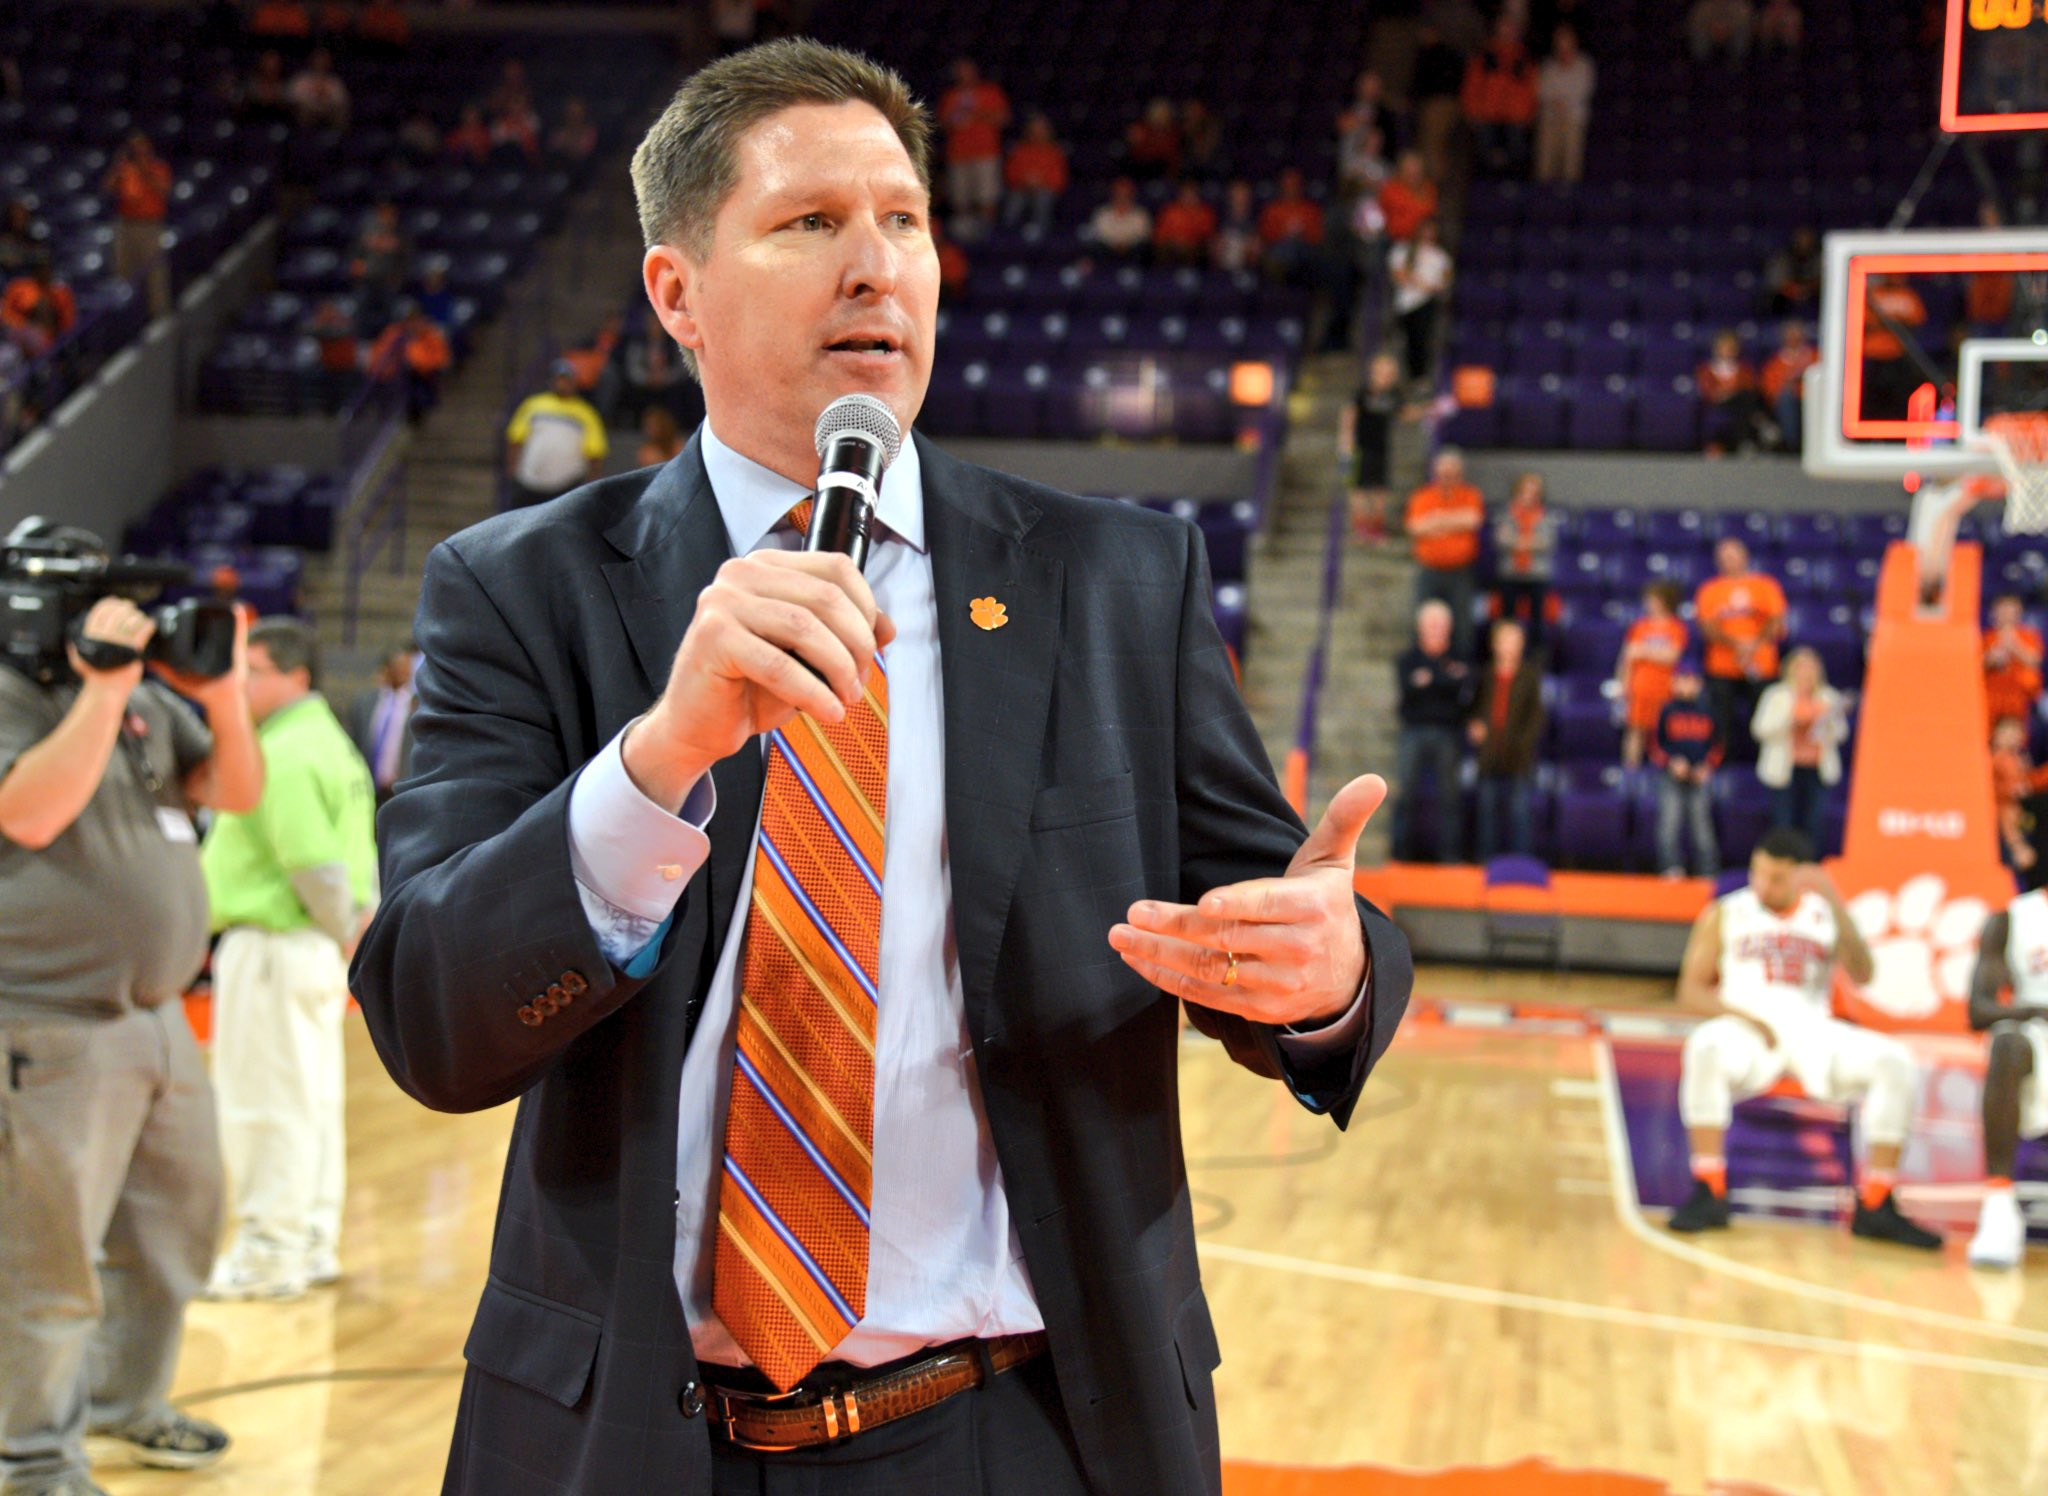 With today's win over NC State, @Coach_Brownell tied Cliff Ellis for most wins vs ACC teams with 59. #TigerPride 🐾 https://t.co/Bzk64VSGO1